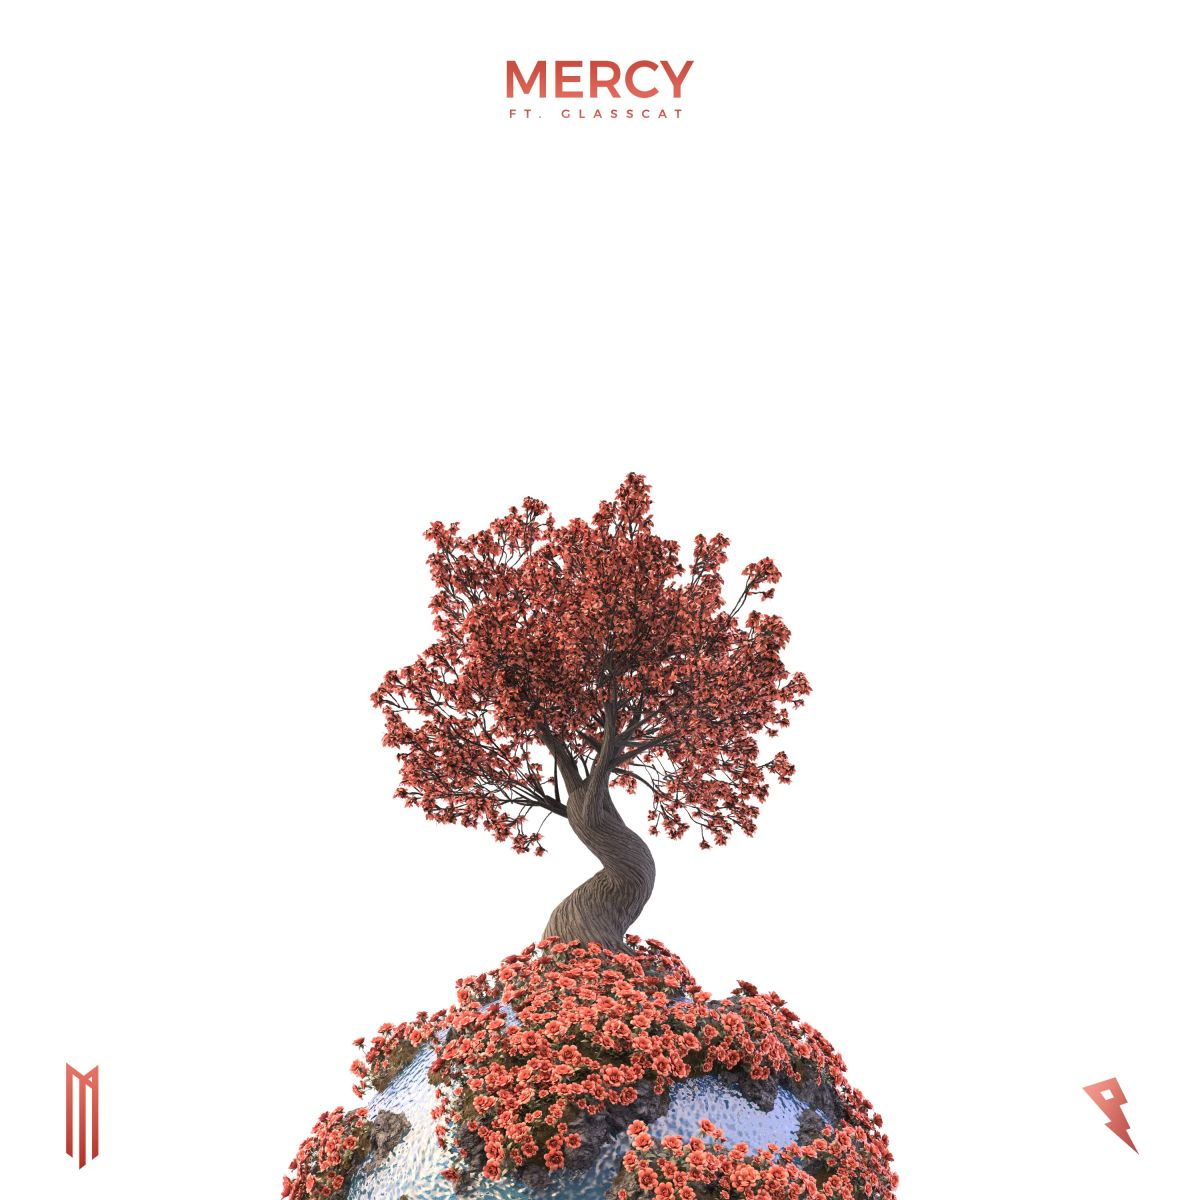 Mitis Mercy Artwork